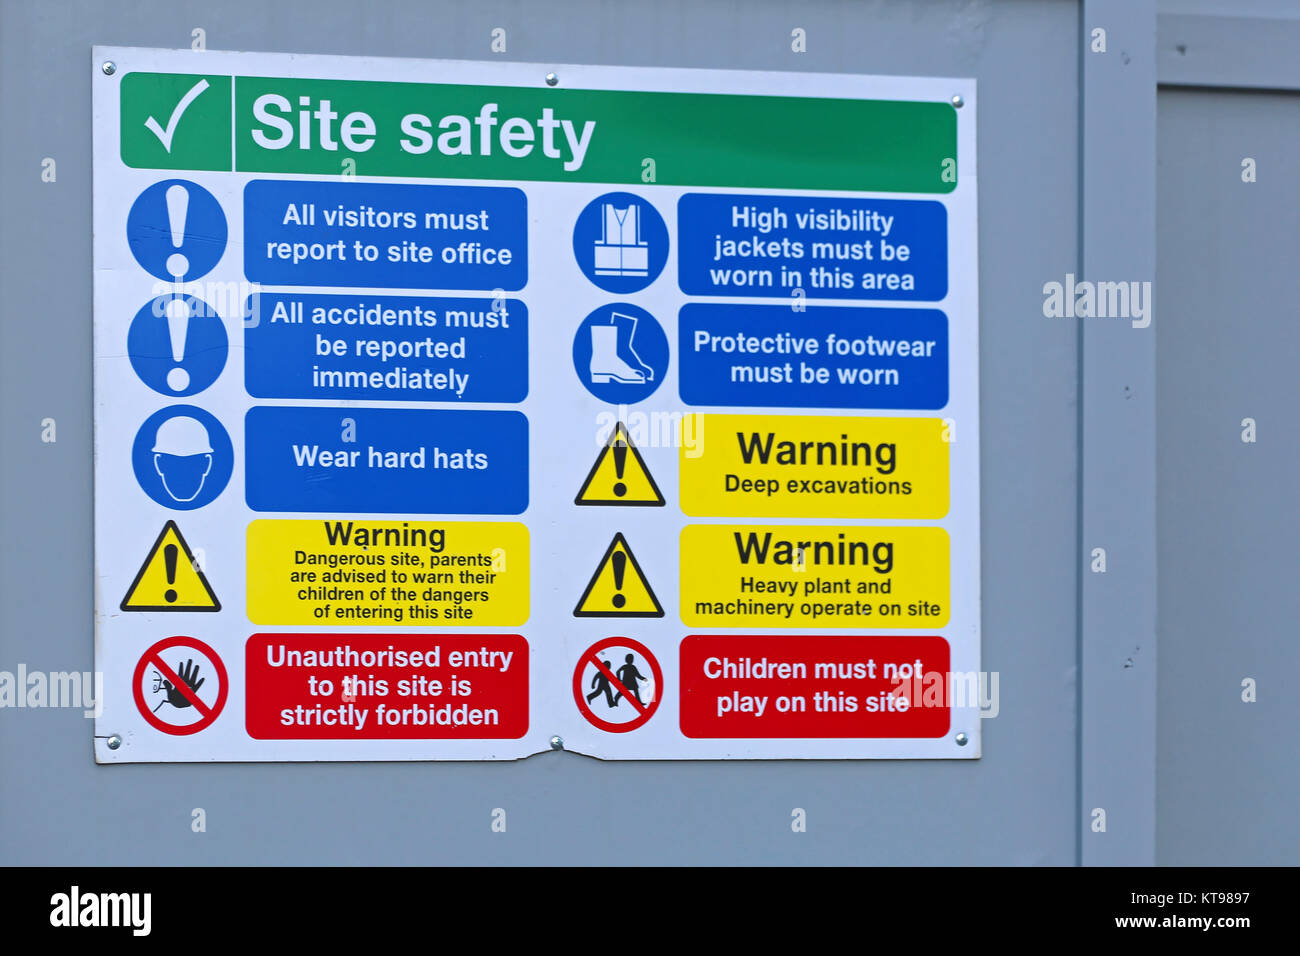 Construction Site Safety - Stock Image